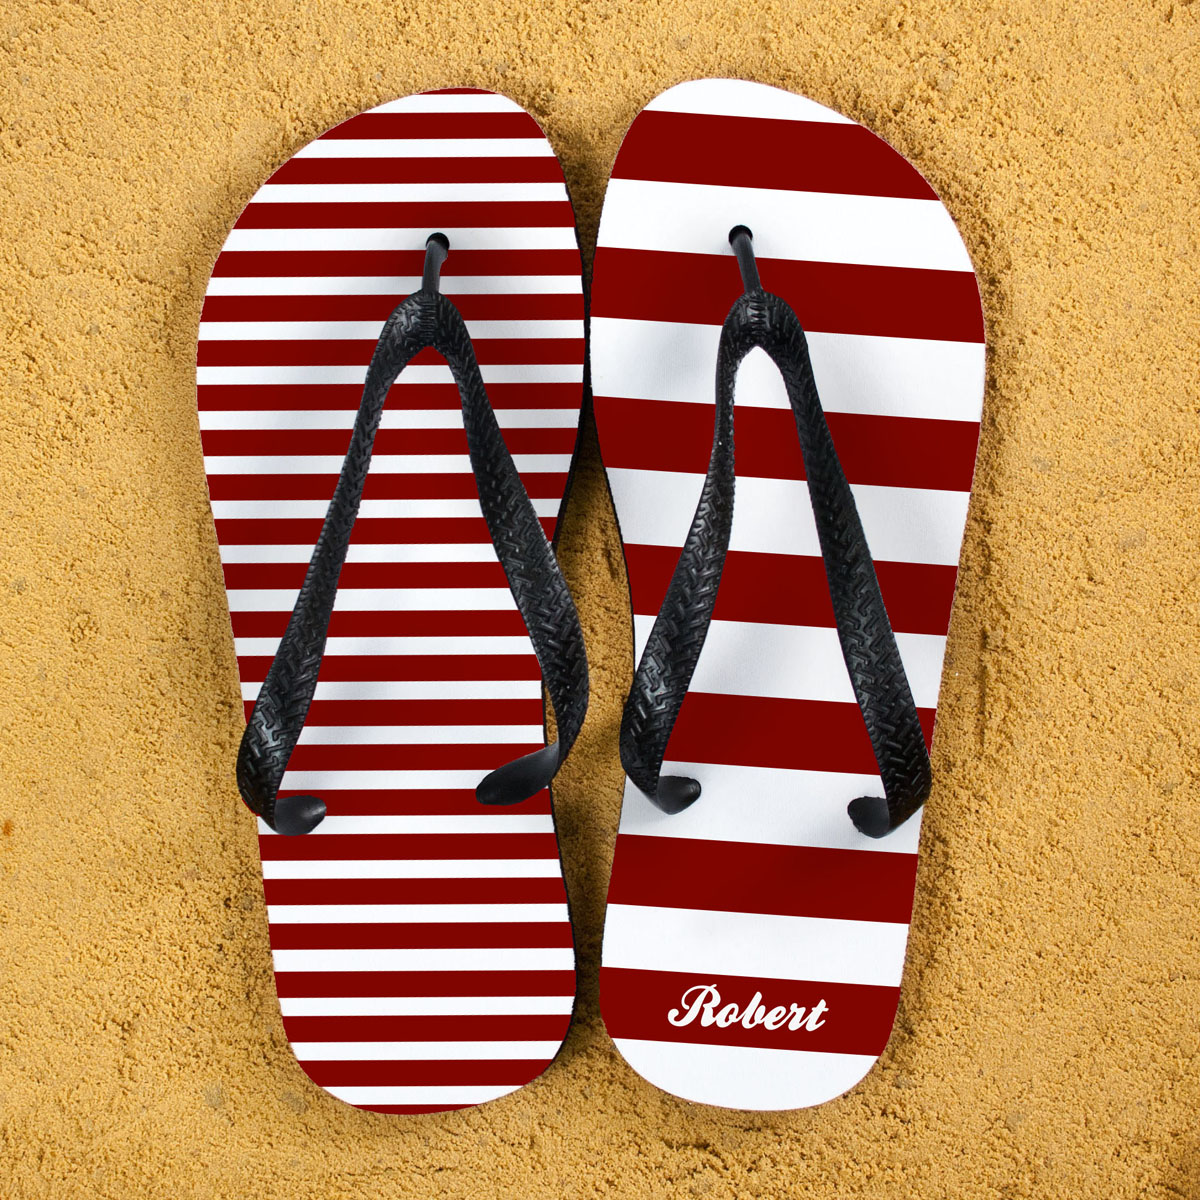 a49d0bd8e77d5 Striped Personalised Flip Flops in Red £15.00 at Present And Gifts